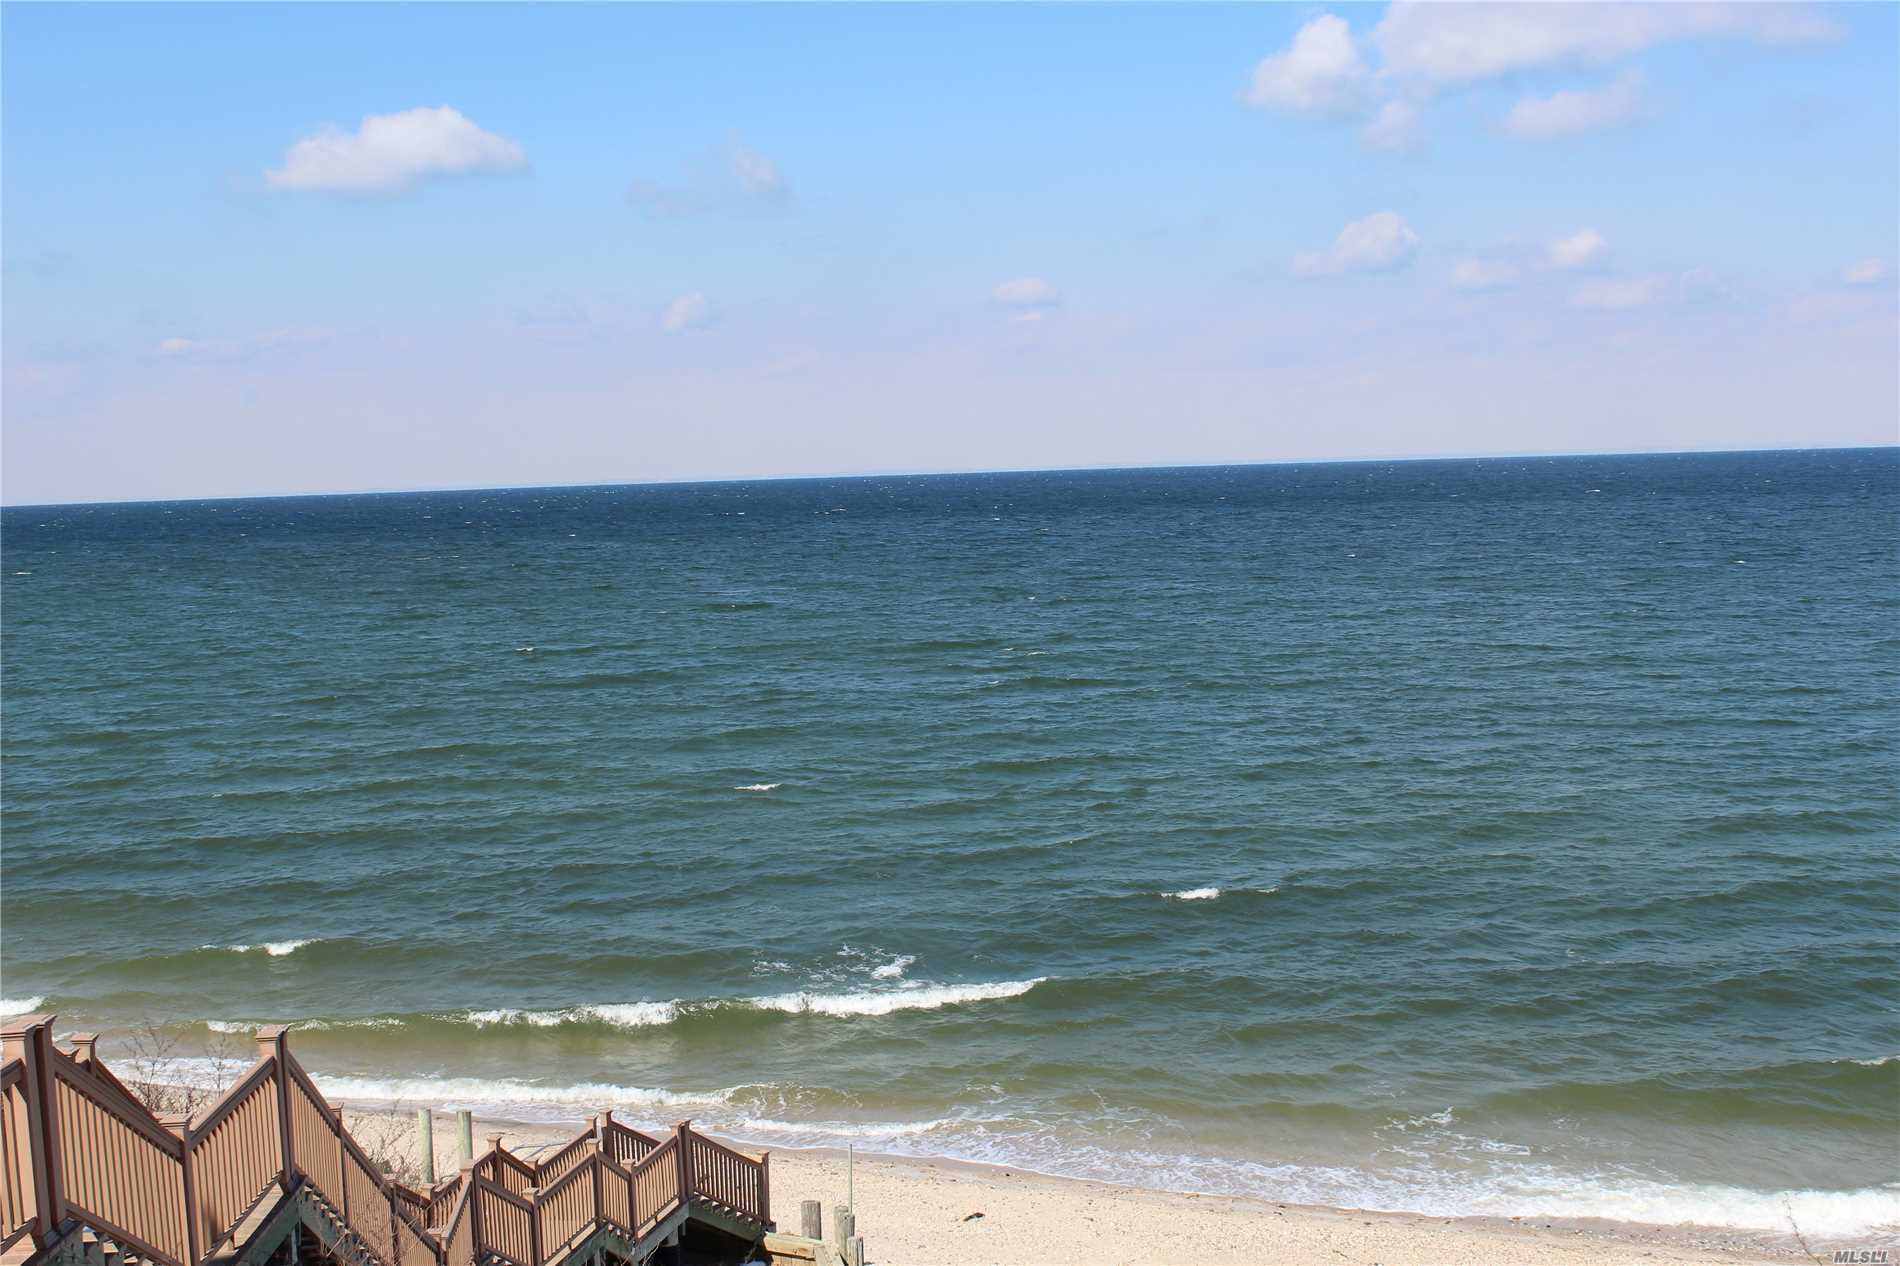 YEAR ROUND COMMUNITY! Beach Cottage with 2 Bedrooms possibly 3. Living Room, Kitchen, Bath, Loft, Deck, Newer Windows Throughout, Private Beach Access, Community Laundry, and Playground. Located Near Beaches, Golf, Vineyards Tasting Rooms, Restaurants.